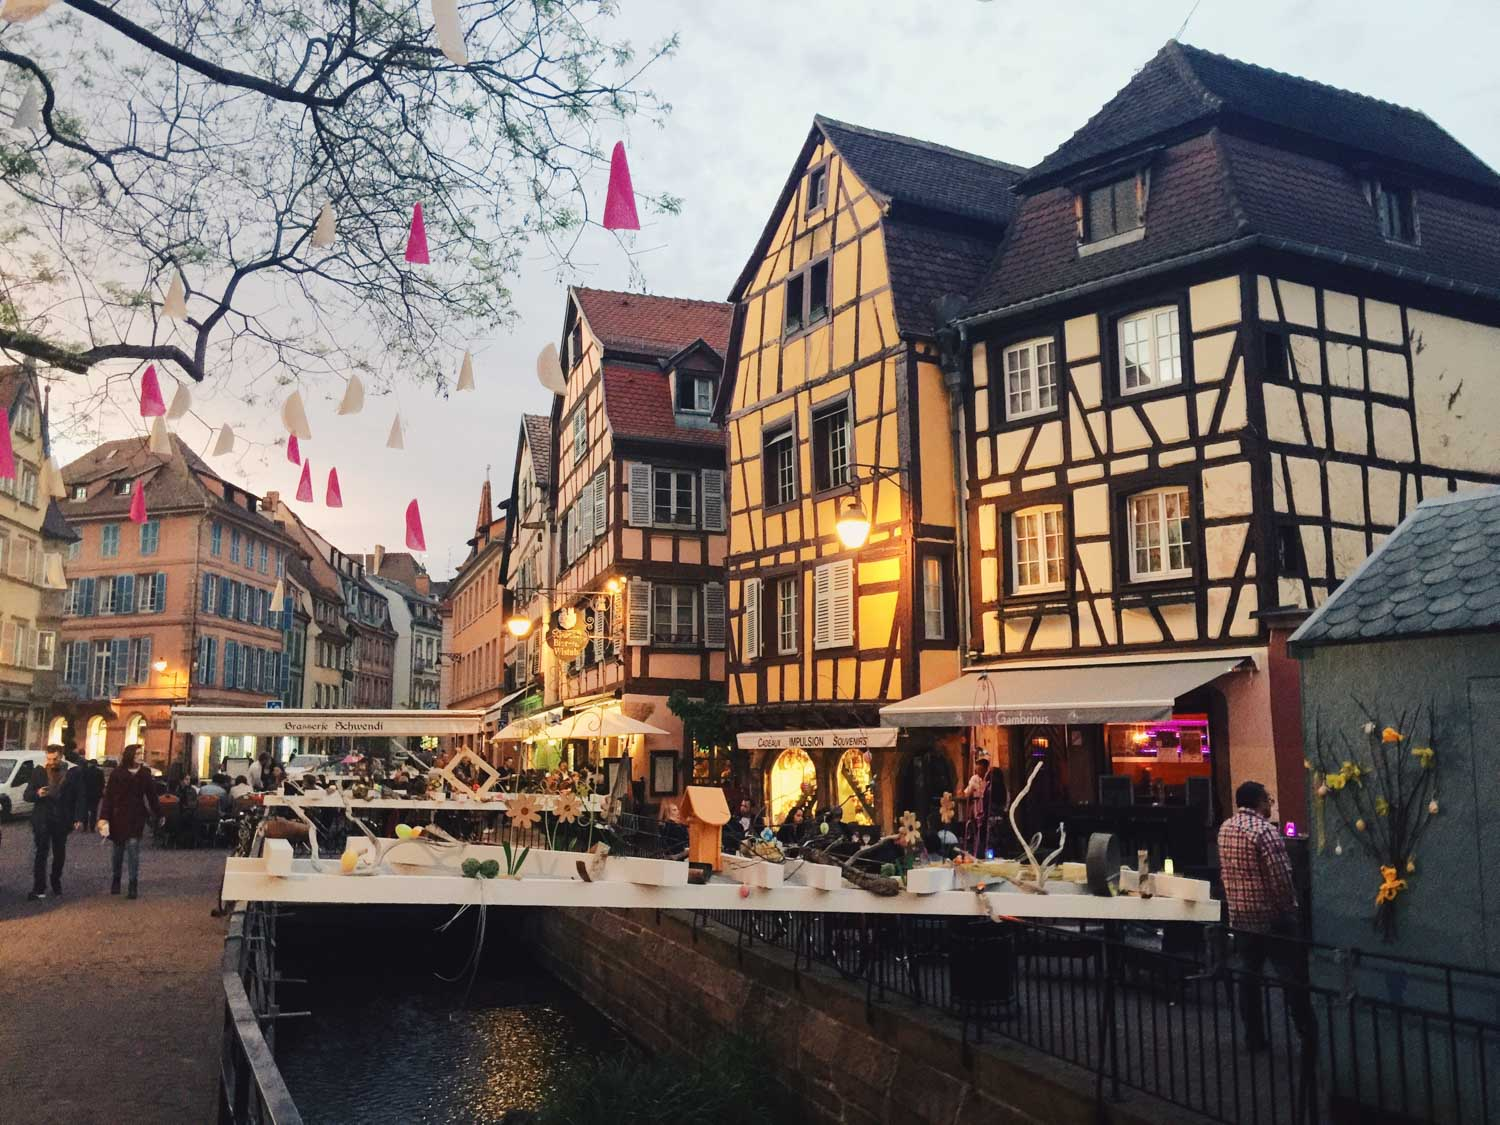 Colmar, France – Real-life fairytale village